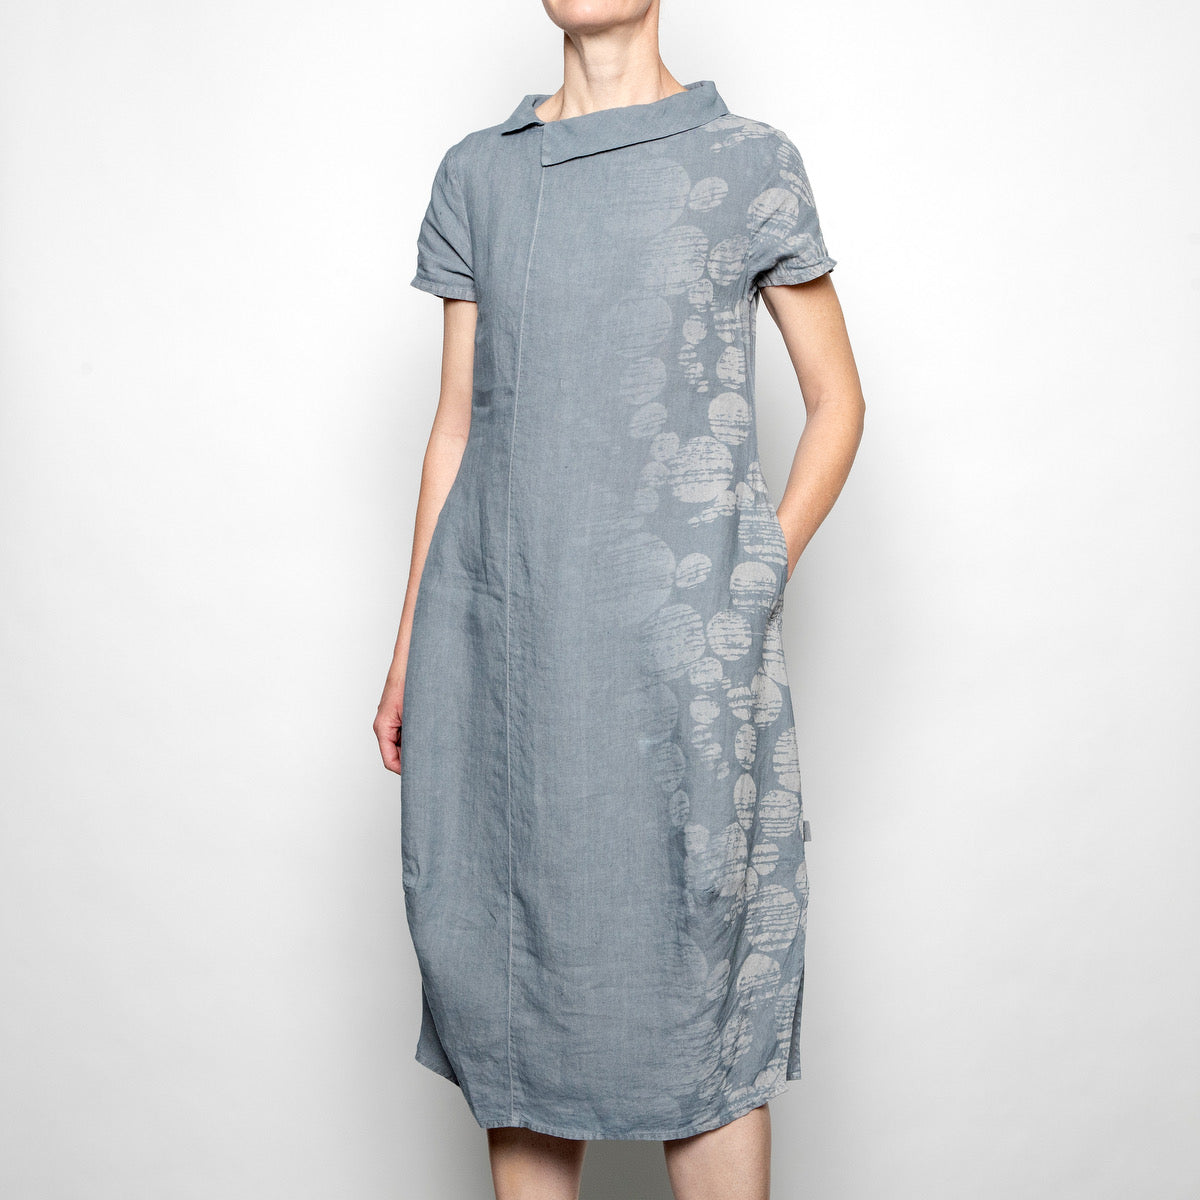 Elemente Clemente Nesna Dress in Stone